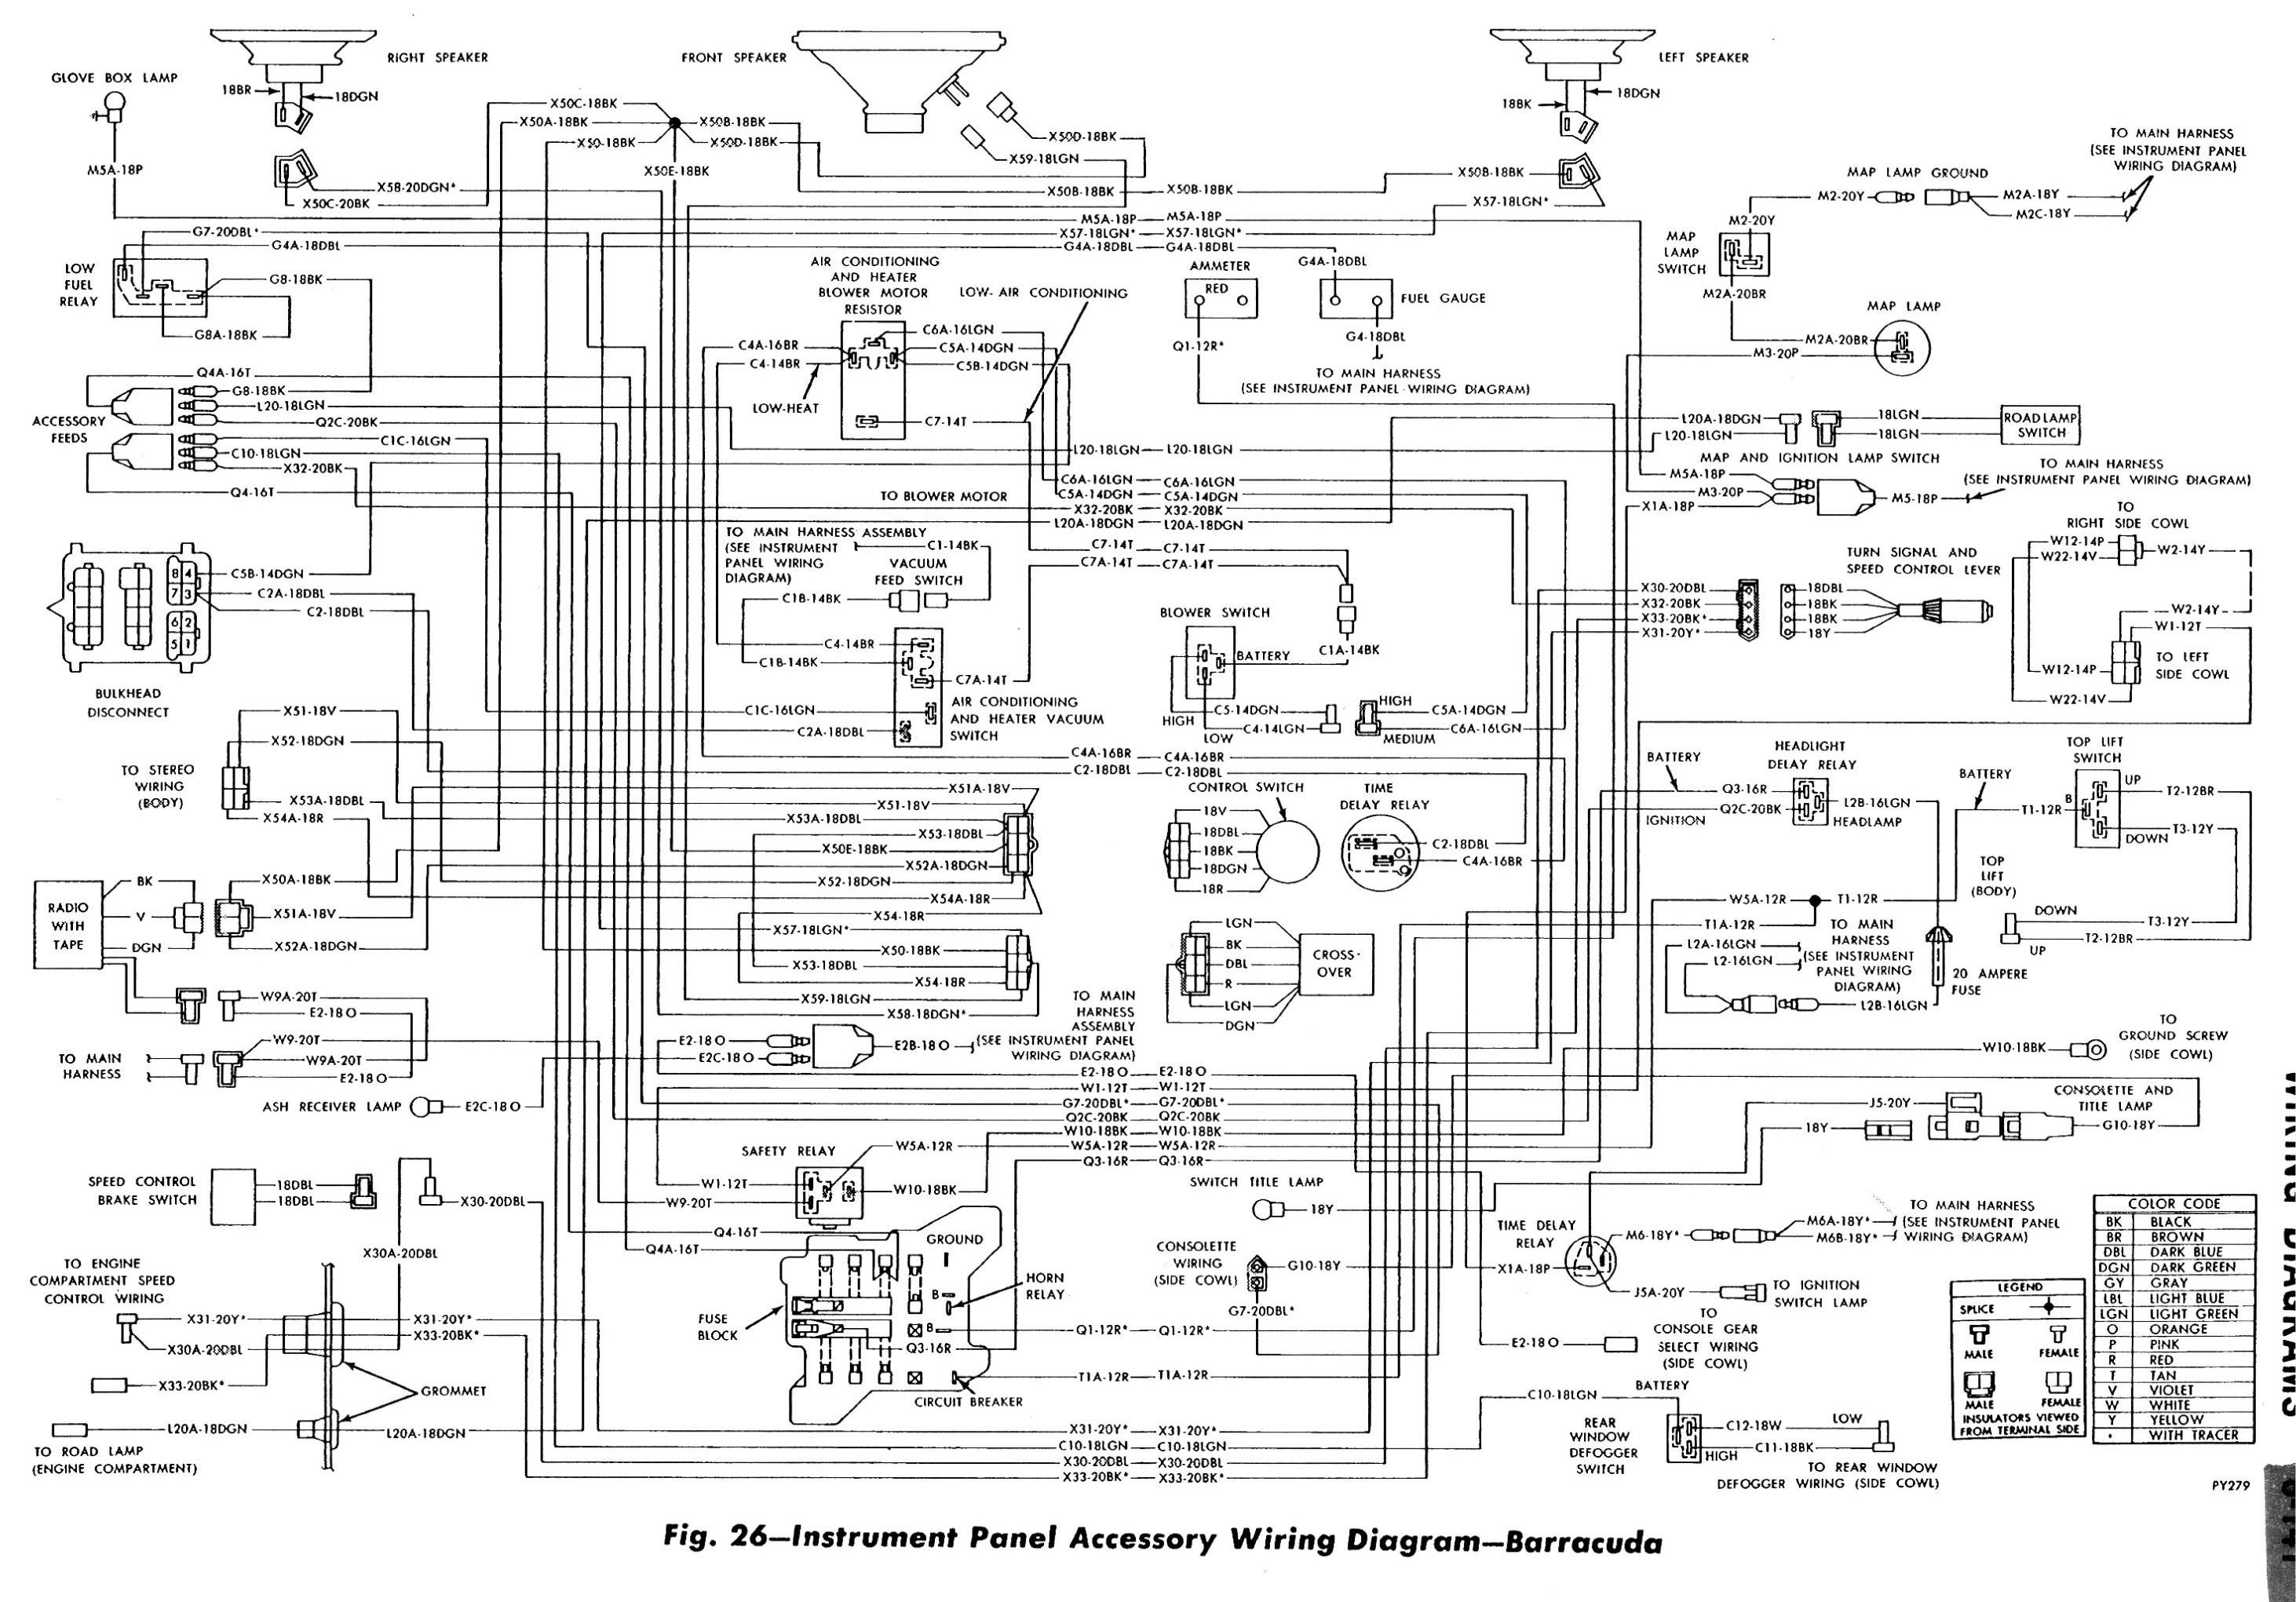 Sensational 1970 Plymouth Roadrunner Fuse Box Diagram Data Schema Wiring Cloud Peadfoxcilixyz